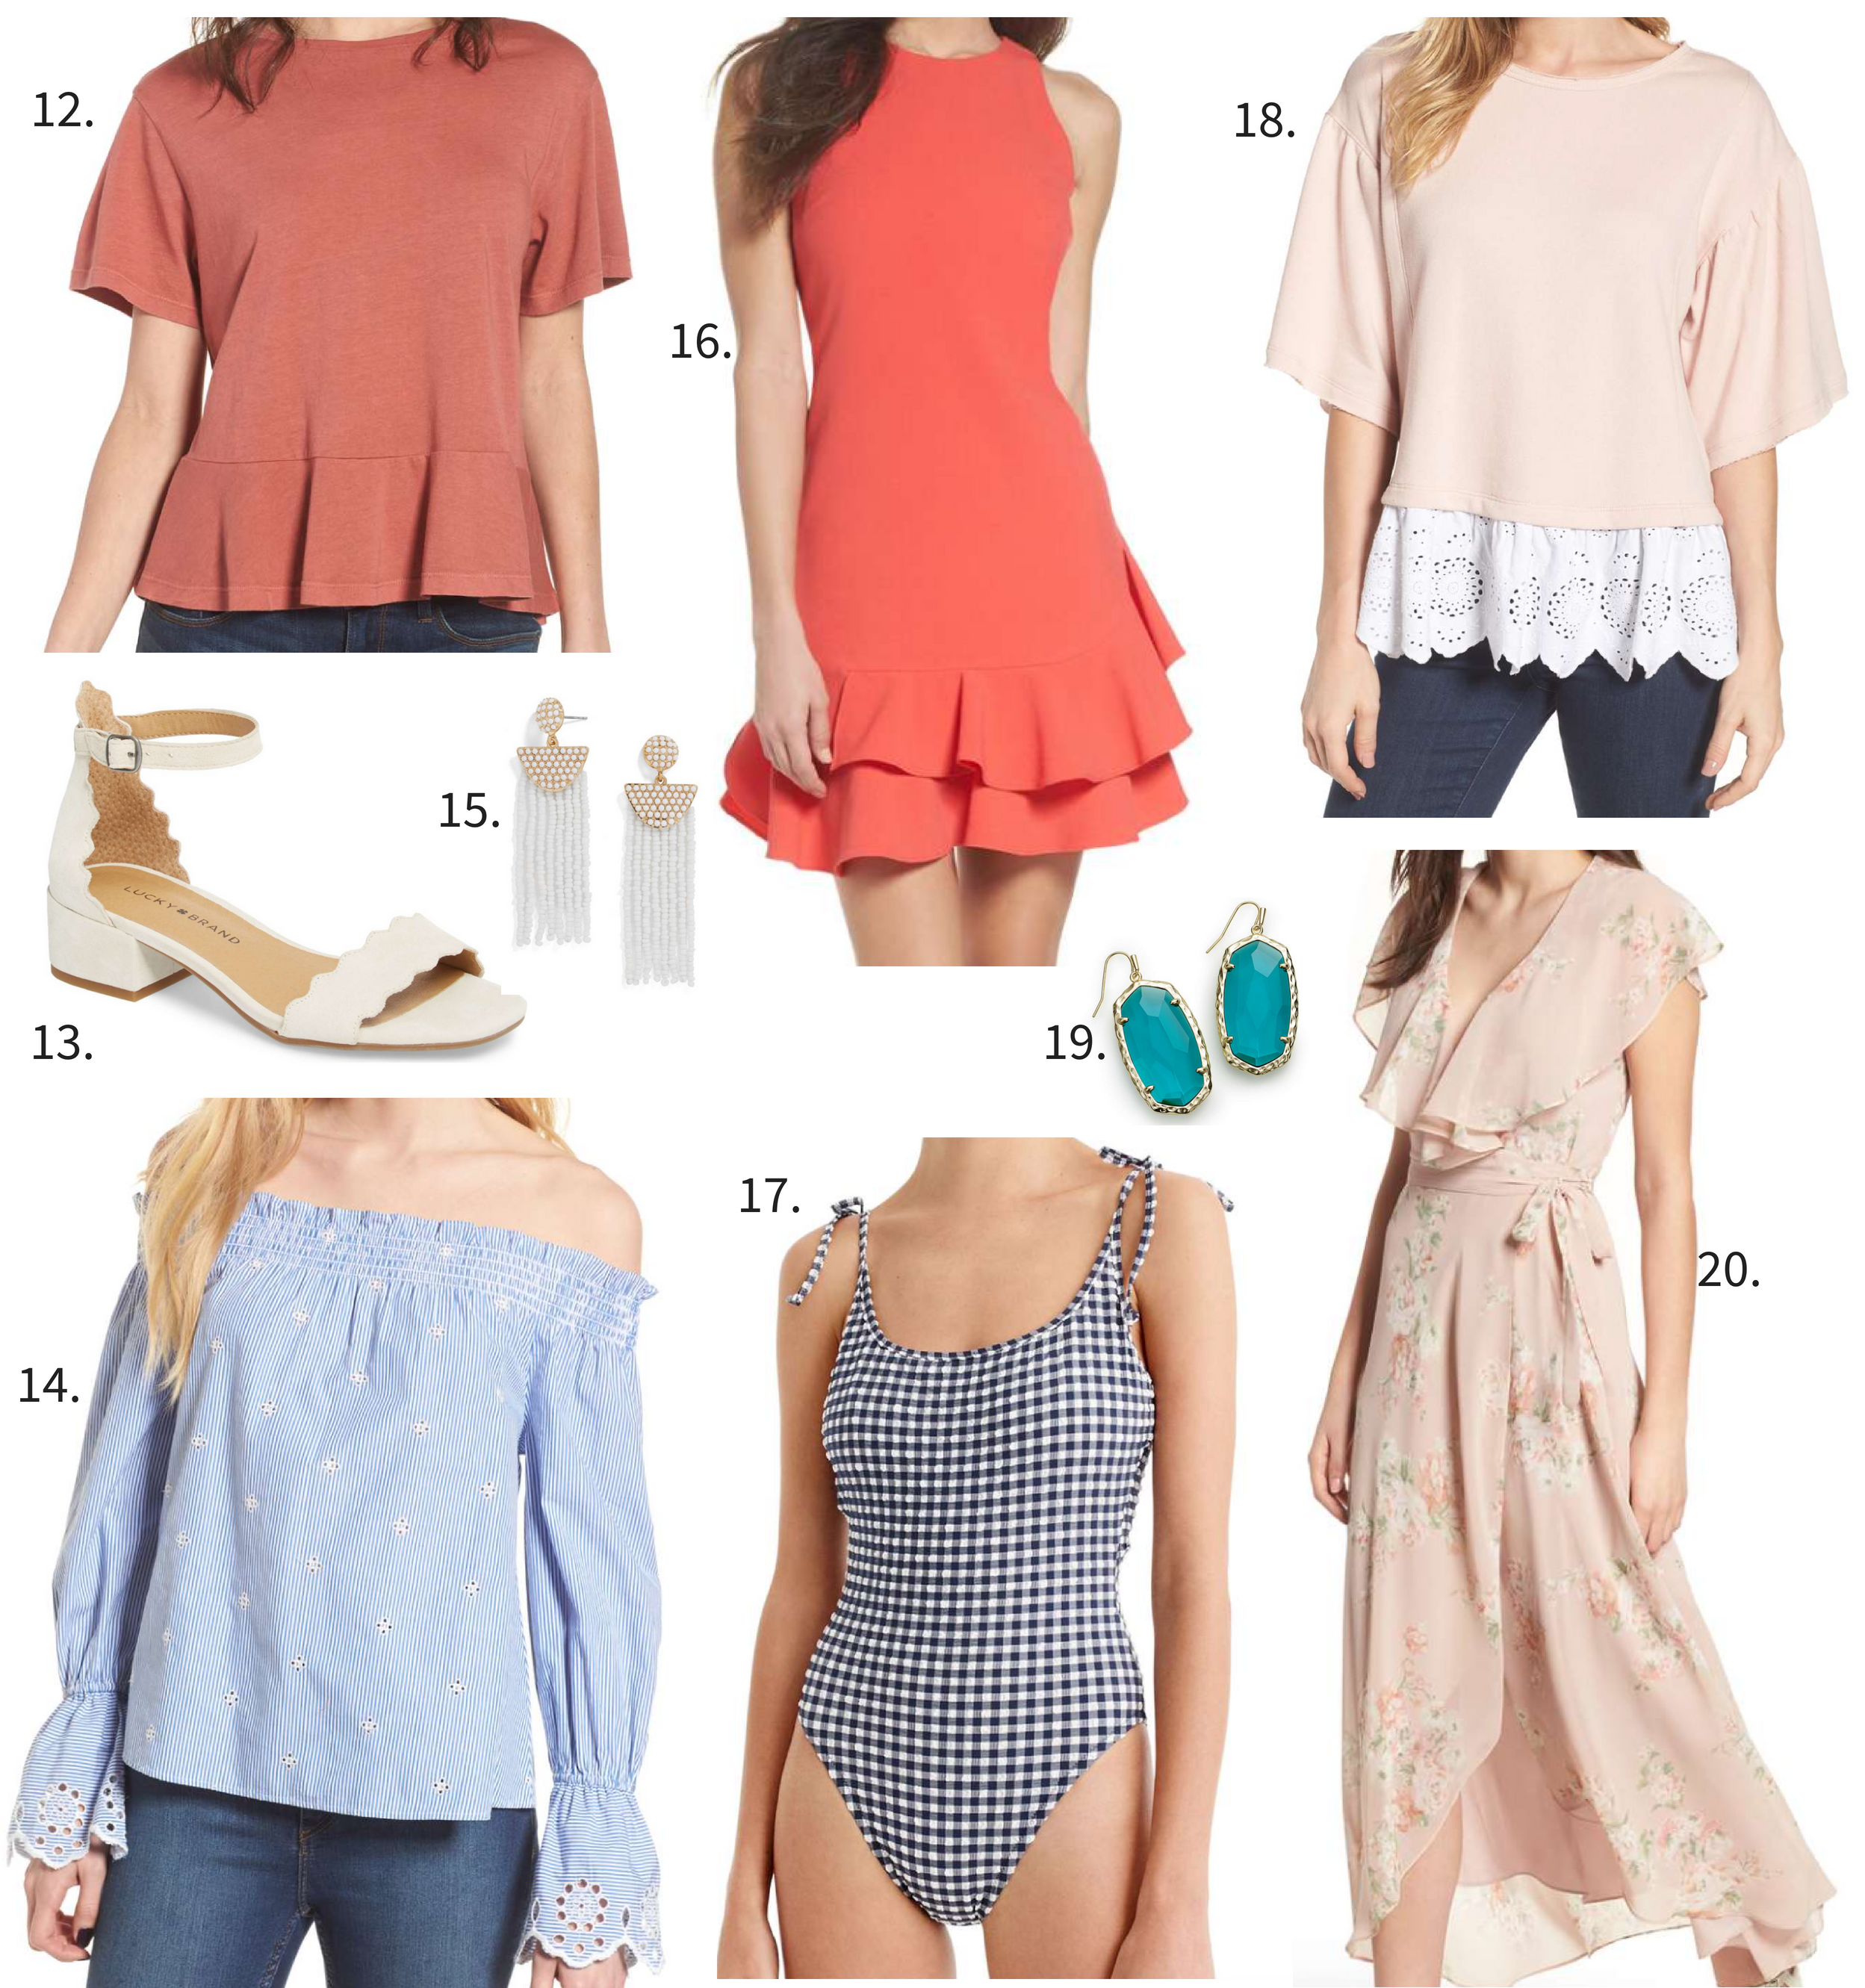 Nordstrom Half-Yearly Sale 2018